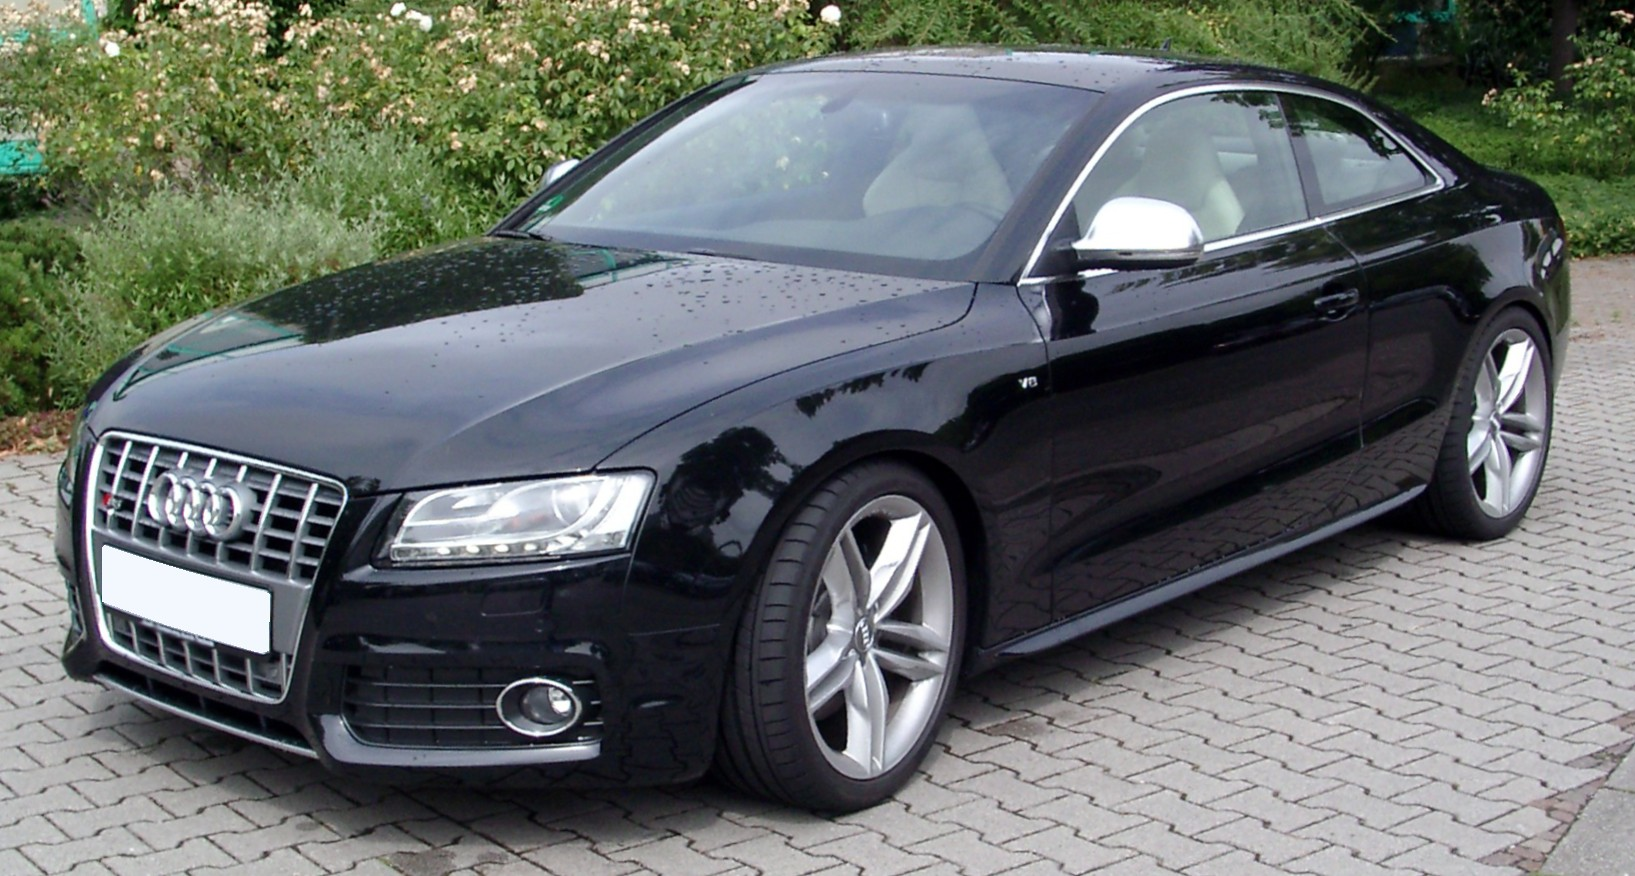 FileAudi S5 front 20080703jpg  Wikimedia Commons